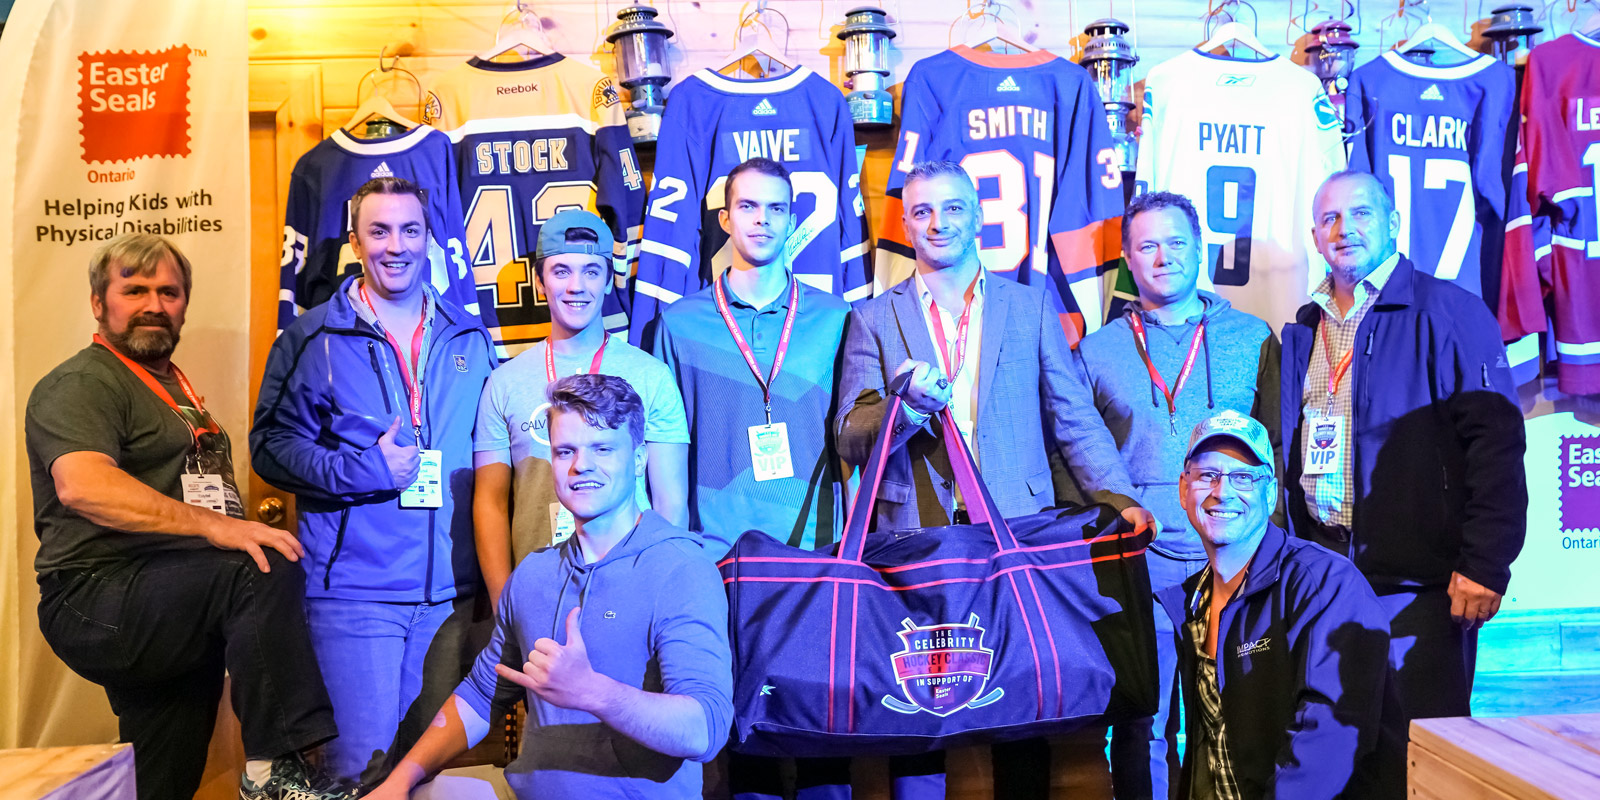 members of the 2019 Thunder Bay $1500 club pose holding up the crested hockey bag